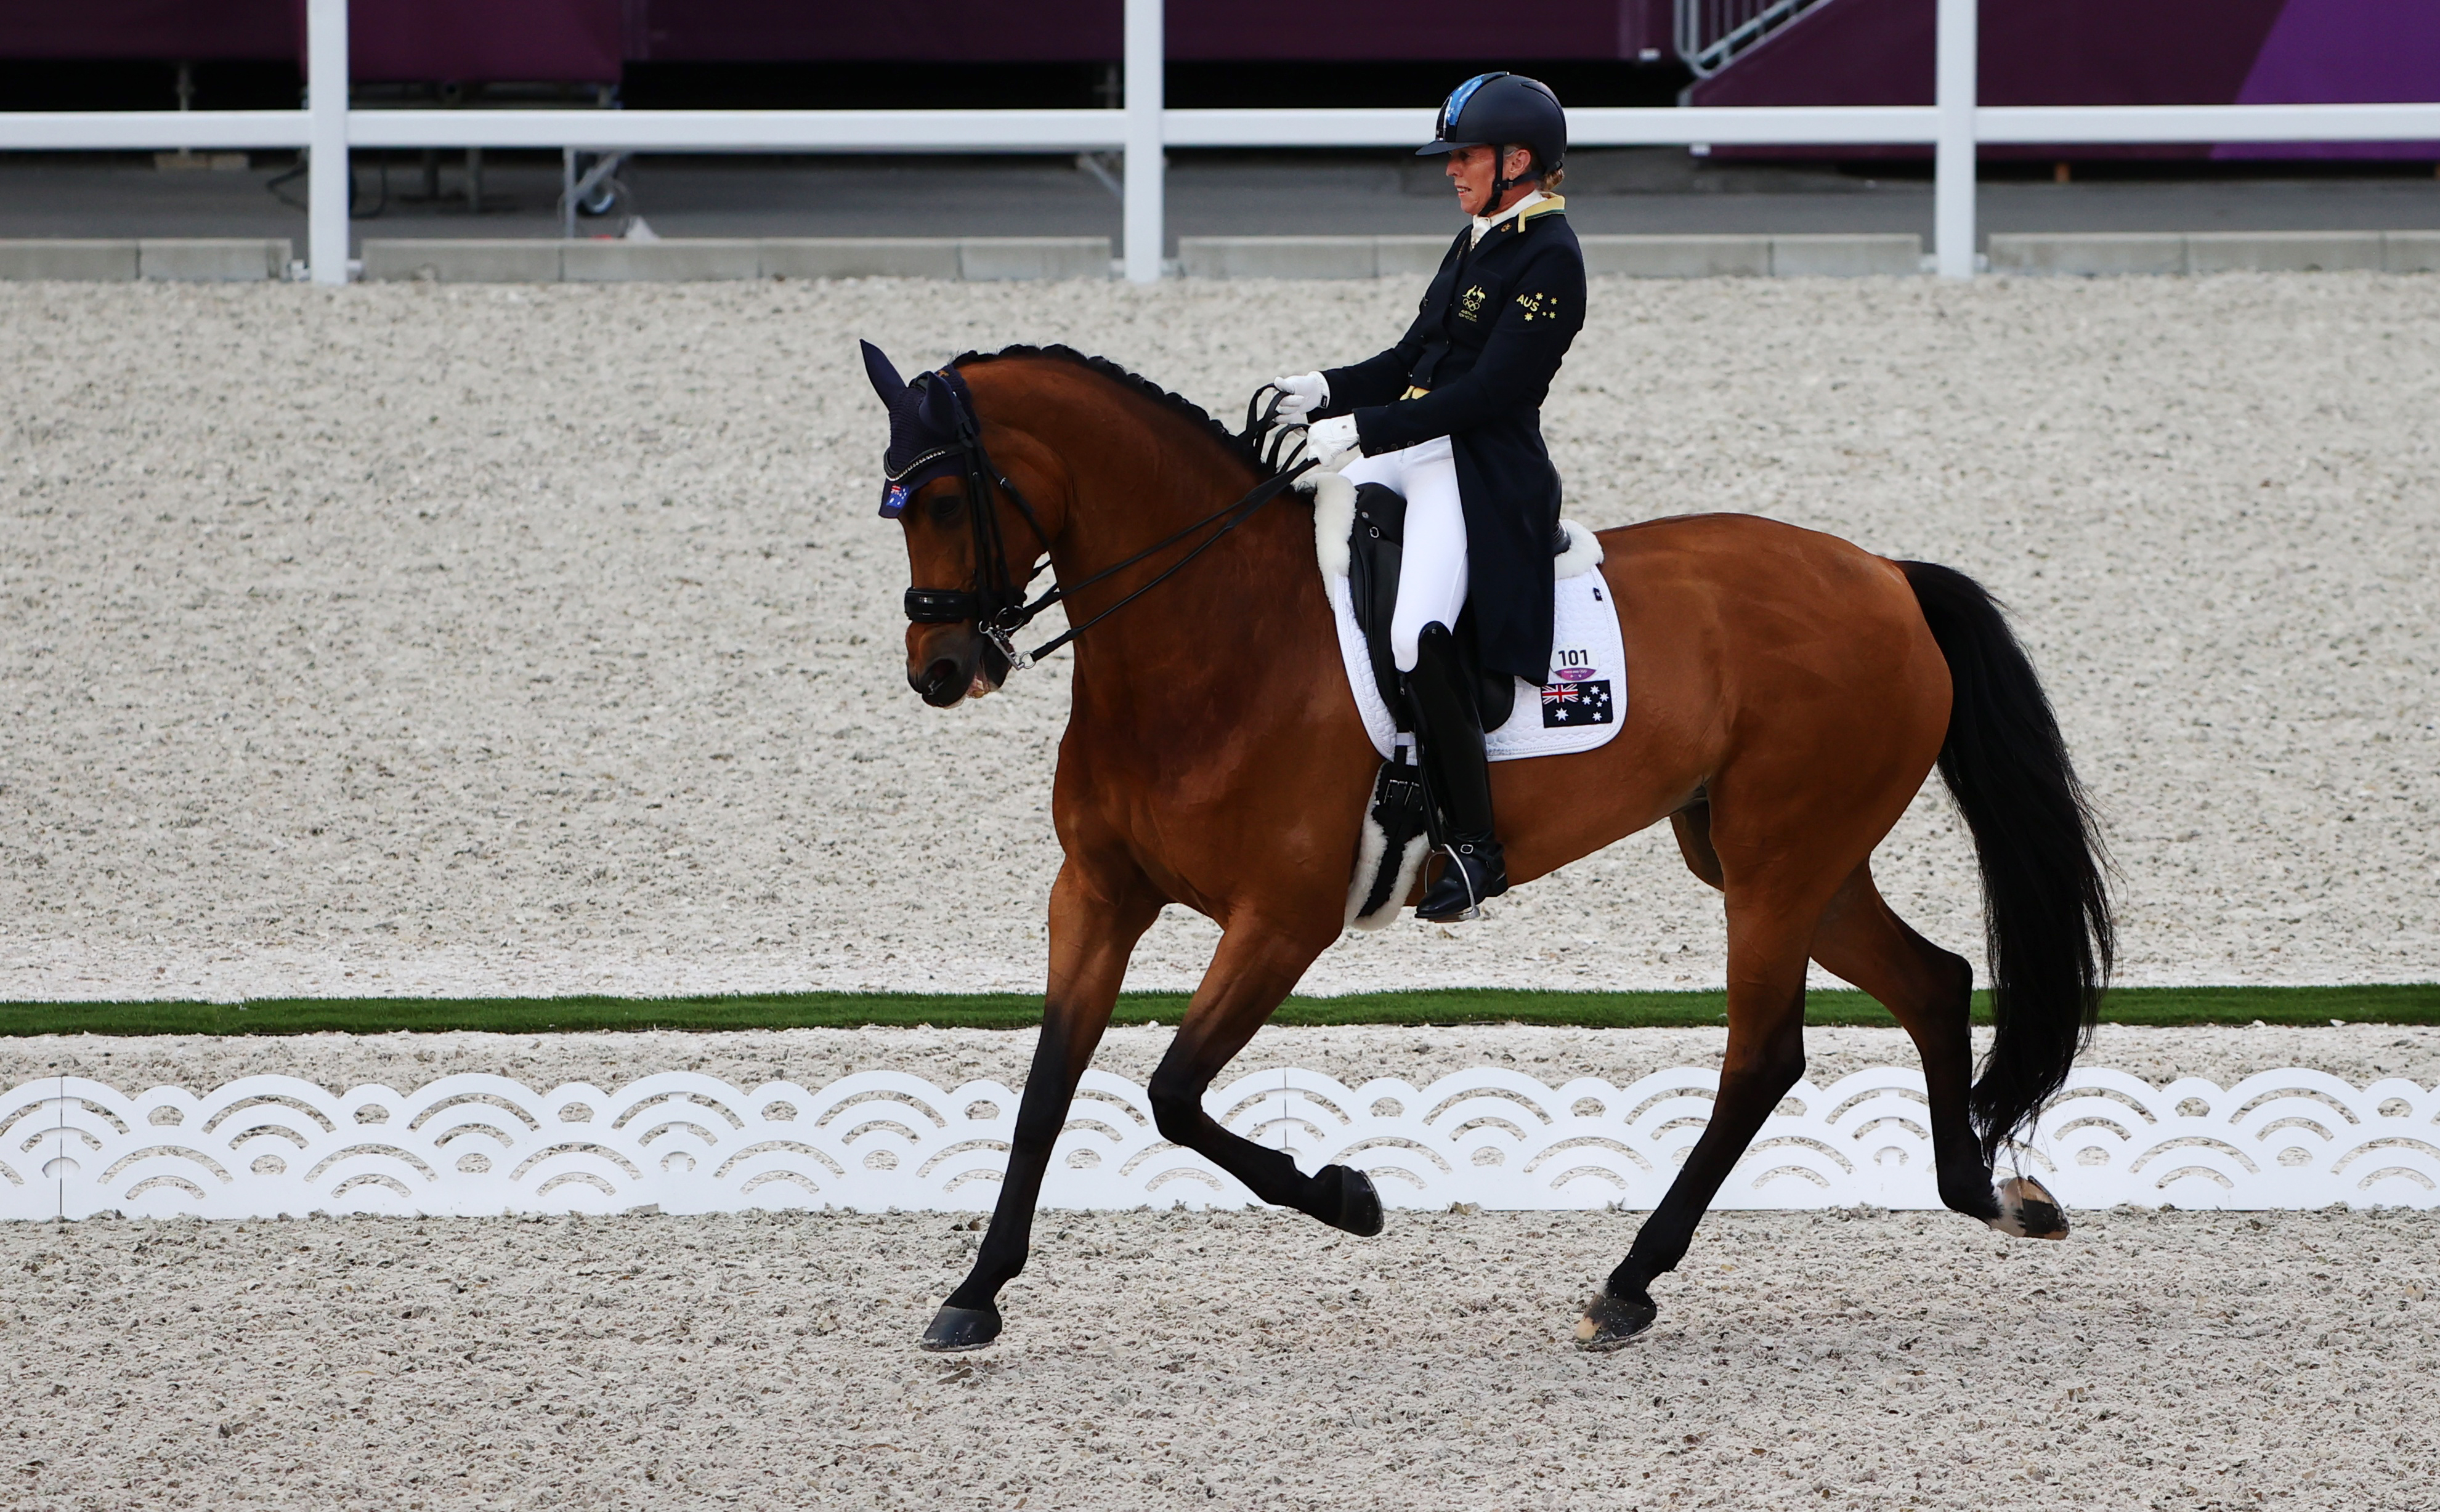 Tokyo 2020 Olympics - Dressage - Individual - Grand Prix - Day 1 - Groups A/B/C - Equestrian Park - Tokyo, Japan - July 24, 2021. Mary Hanna of Australia on her horse Calanta competes. REUTERS/Alkis Konstantinidis